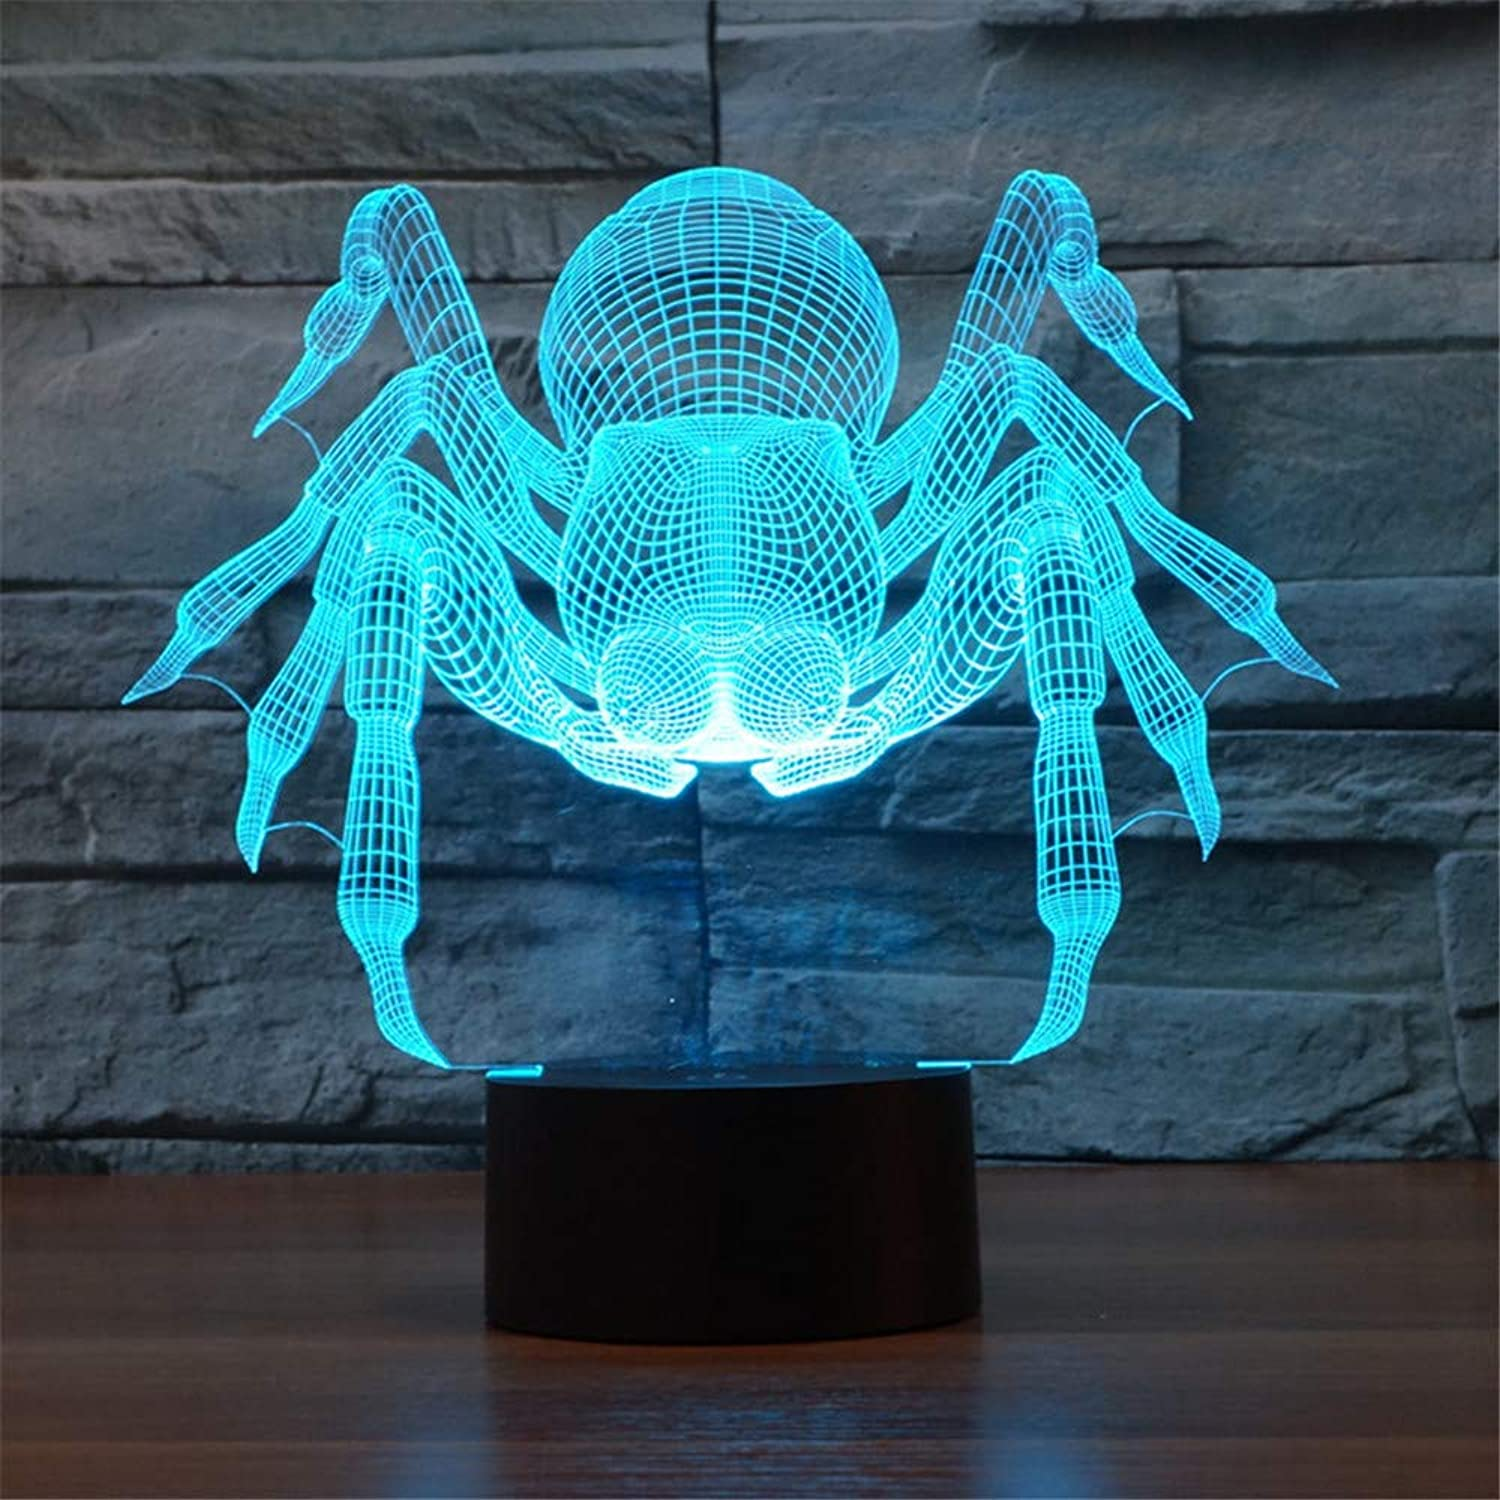 3D LED Night Light Table Desk Lamps 3D Optical Illusion Visual Lamp 7 colors Touch Table Desk Lamp for Christmas Birthday Gift Spider